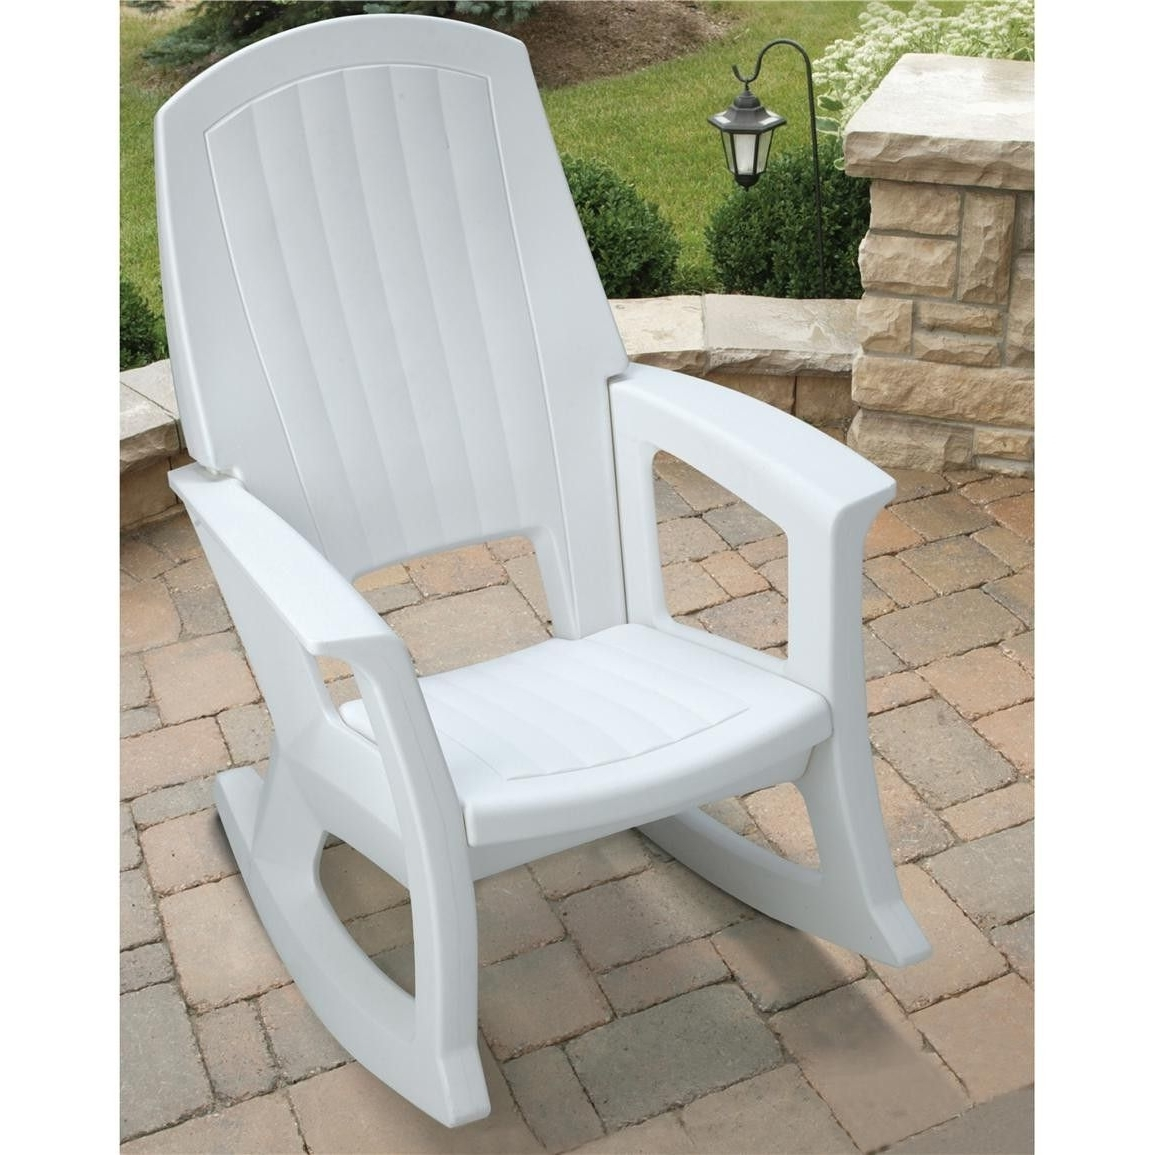 Recent Semco Plastics White Resin Outdoor Patio Rocking Chair Semw : Rural Pertaining To Resin Wicker Patio Rocking Chairs (View 9 of 15)